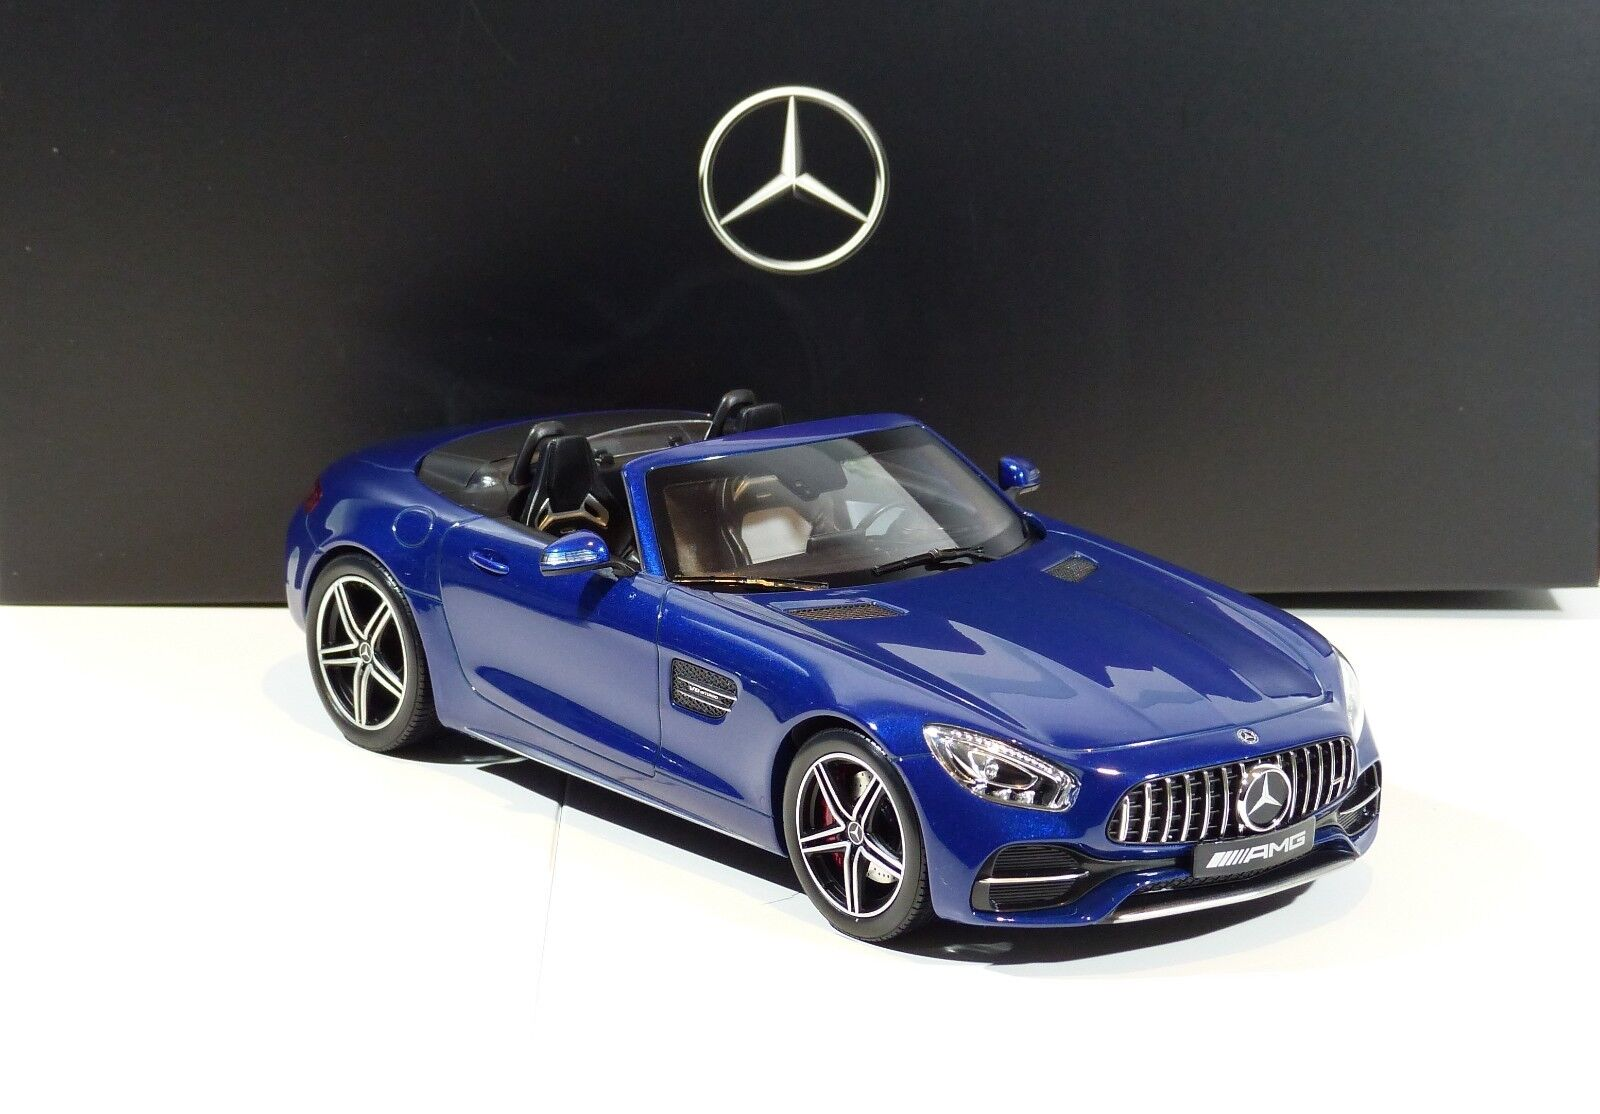 MERCEDES-BENZ AMG GT C ROADSTER BLU METALLIZZATO (2017) NUOVO OVP 1 18